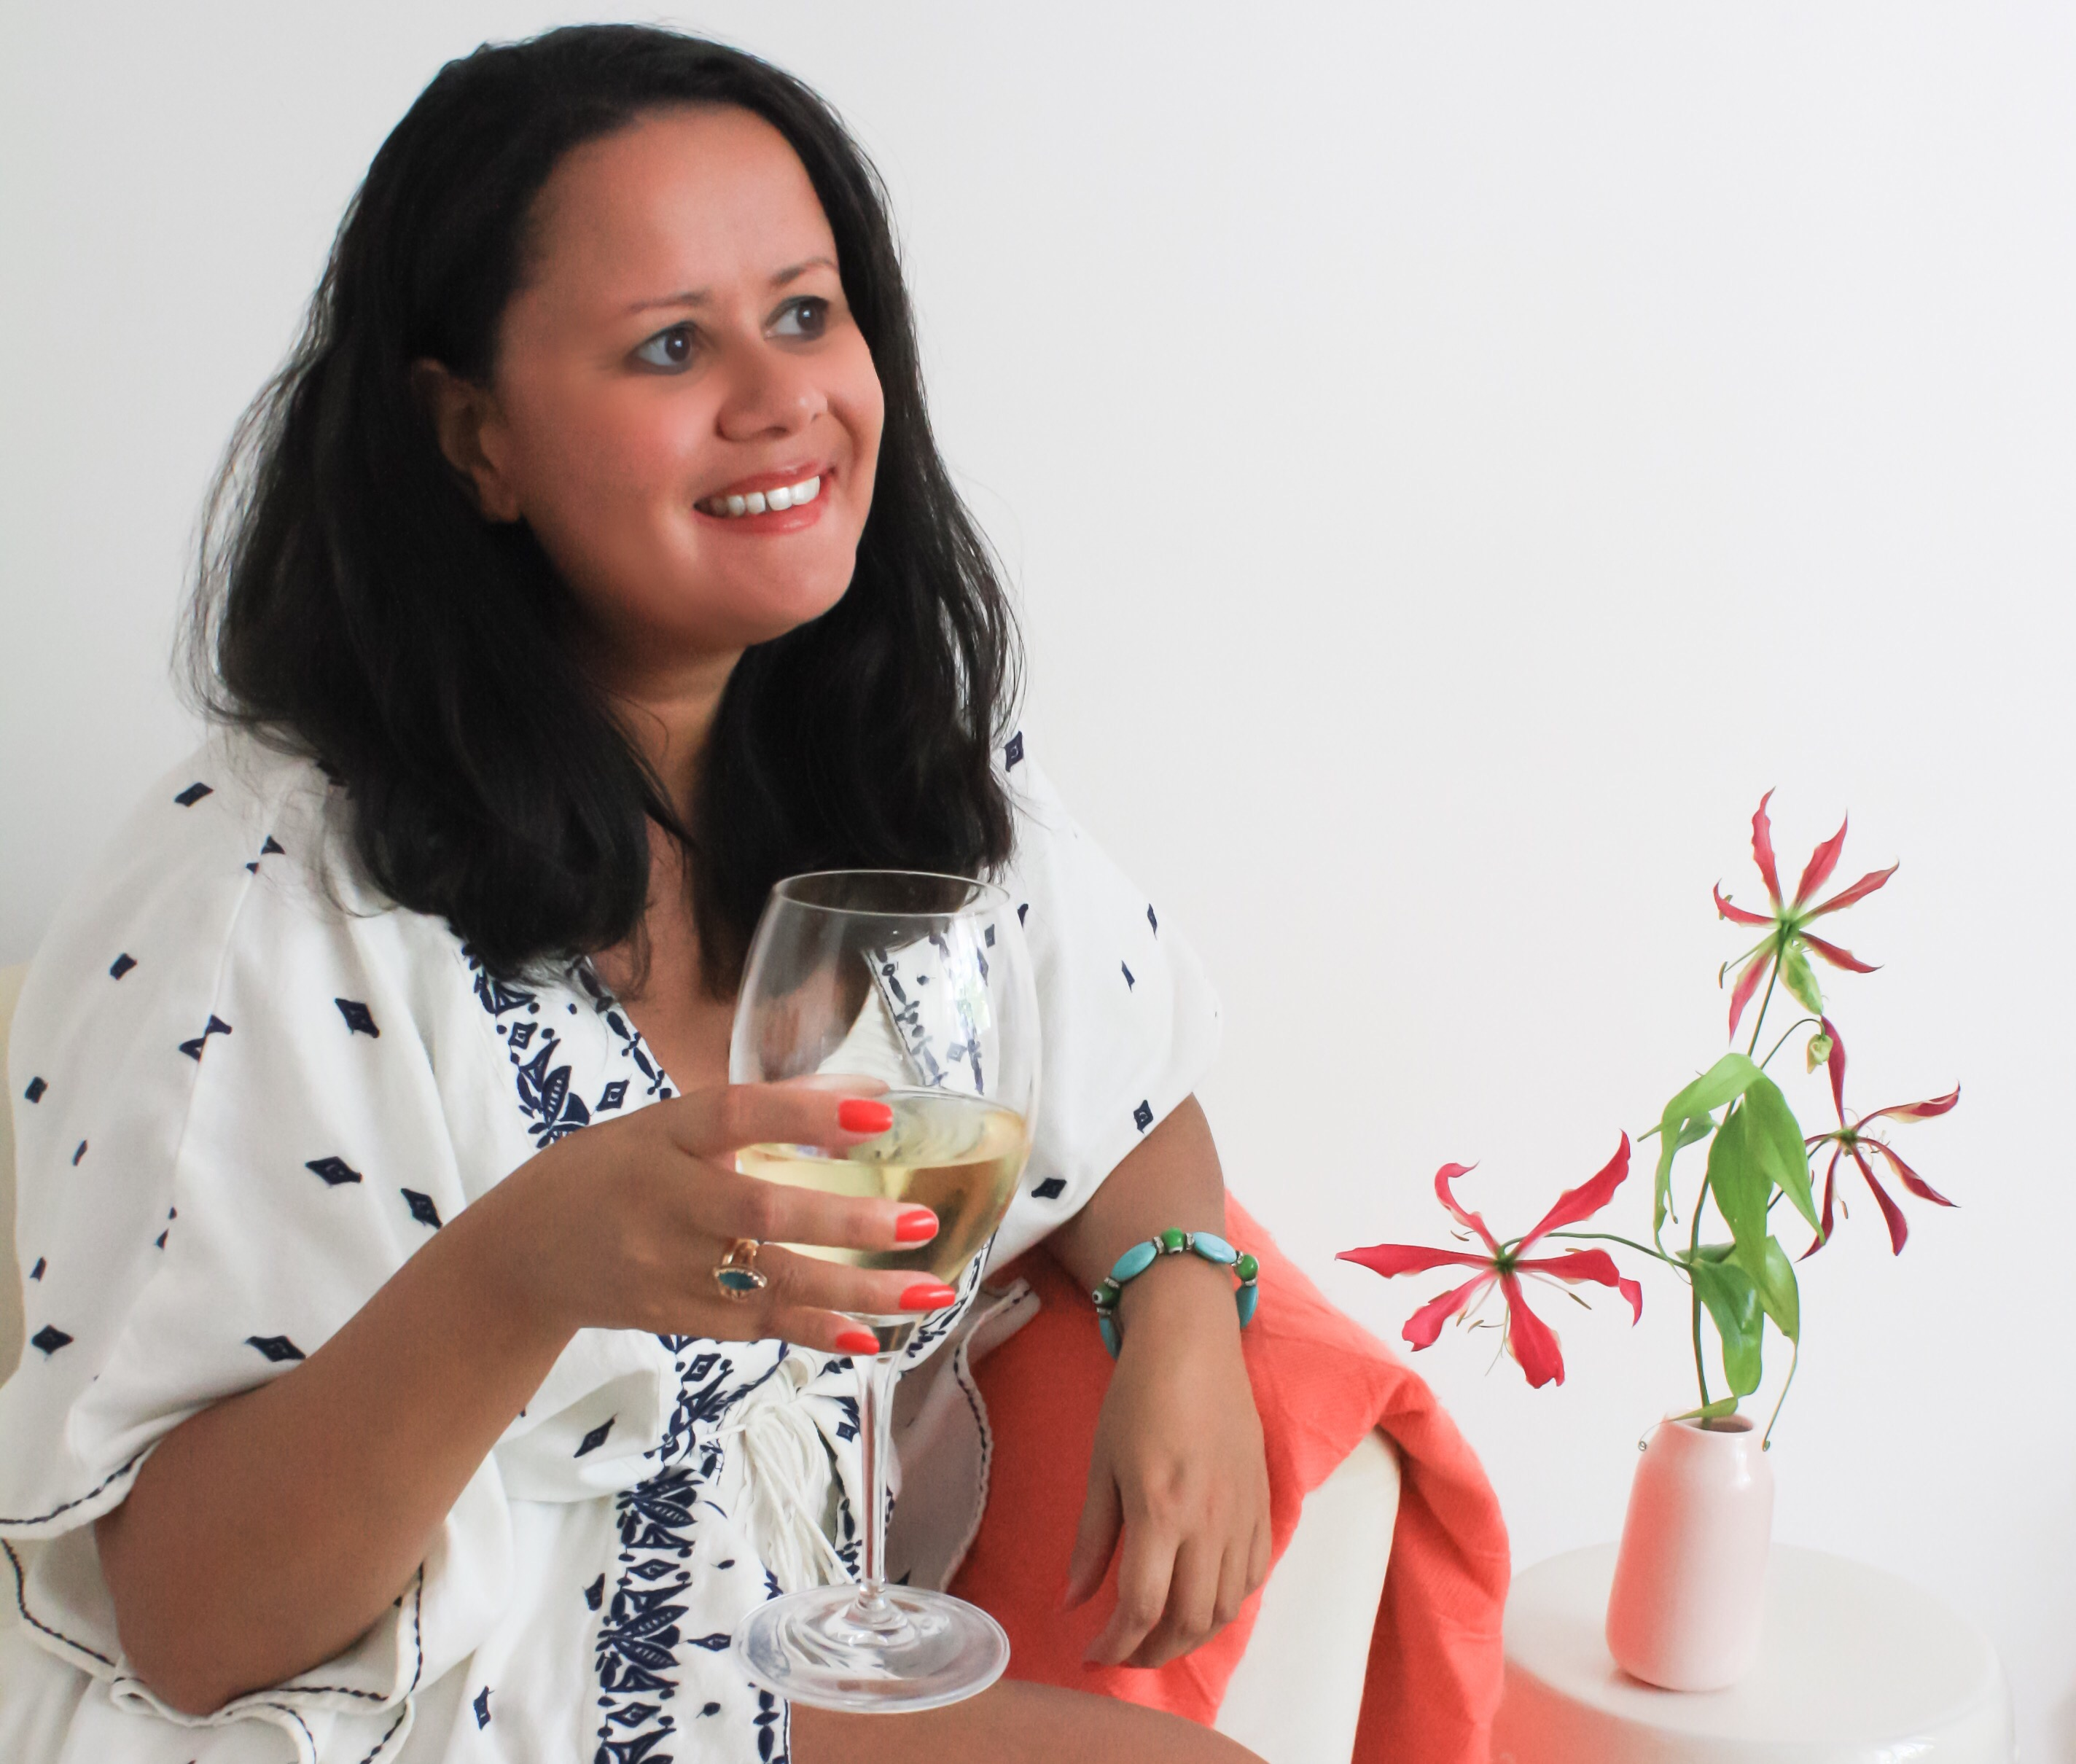 30s Magazine - A Summer Wine Tasting Party